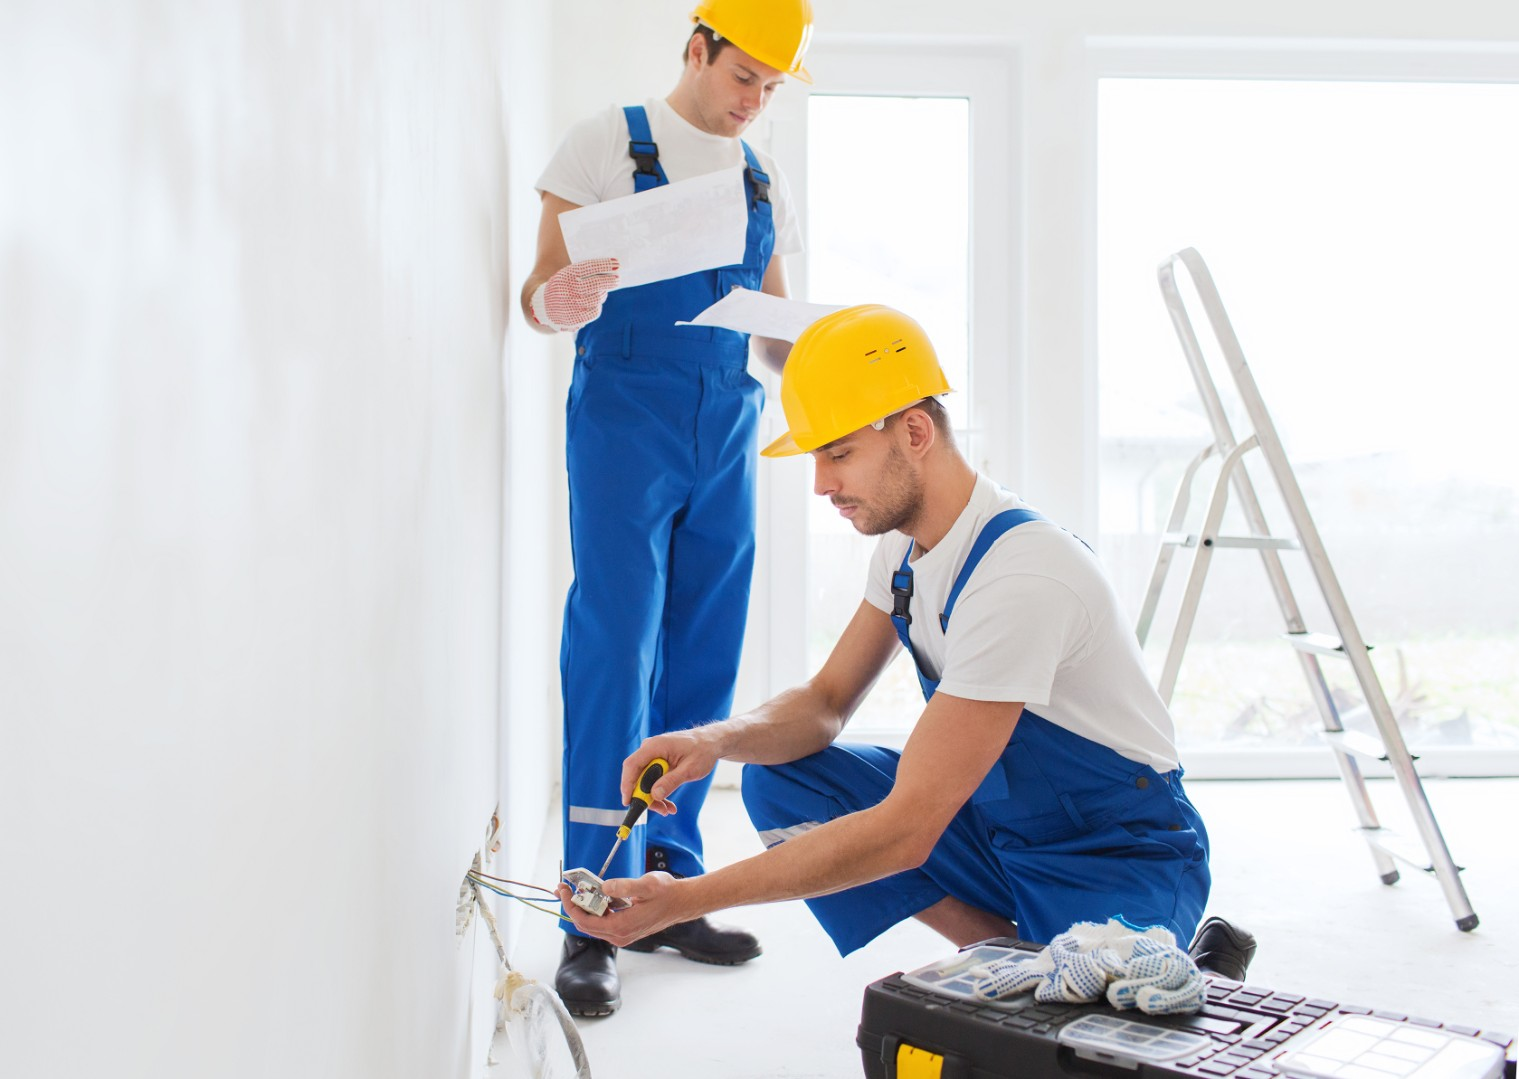 electricians_freelancers_small_business